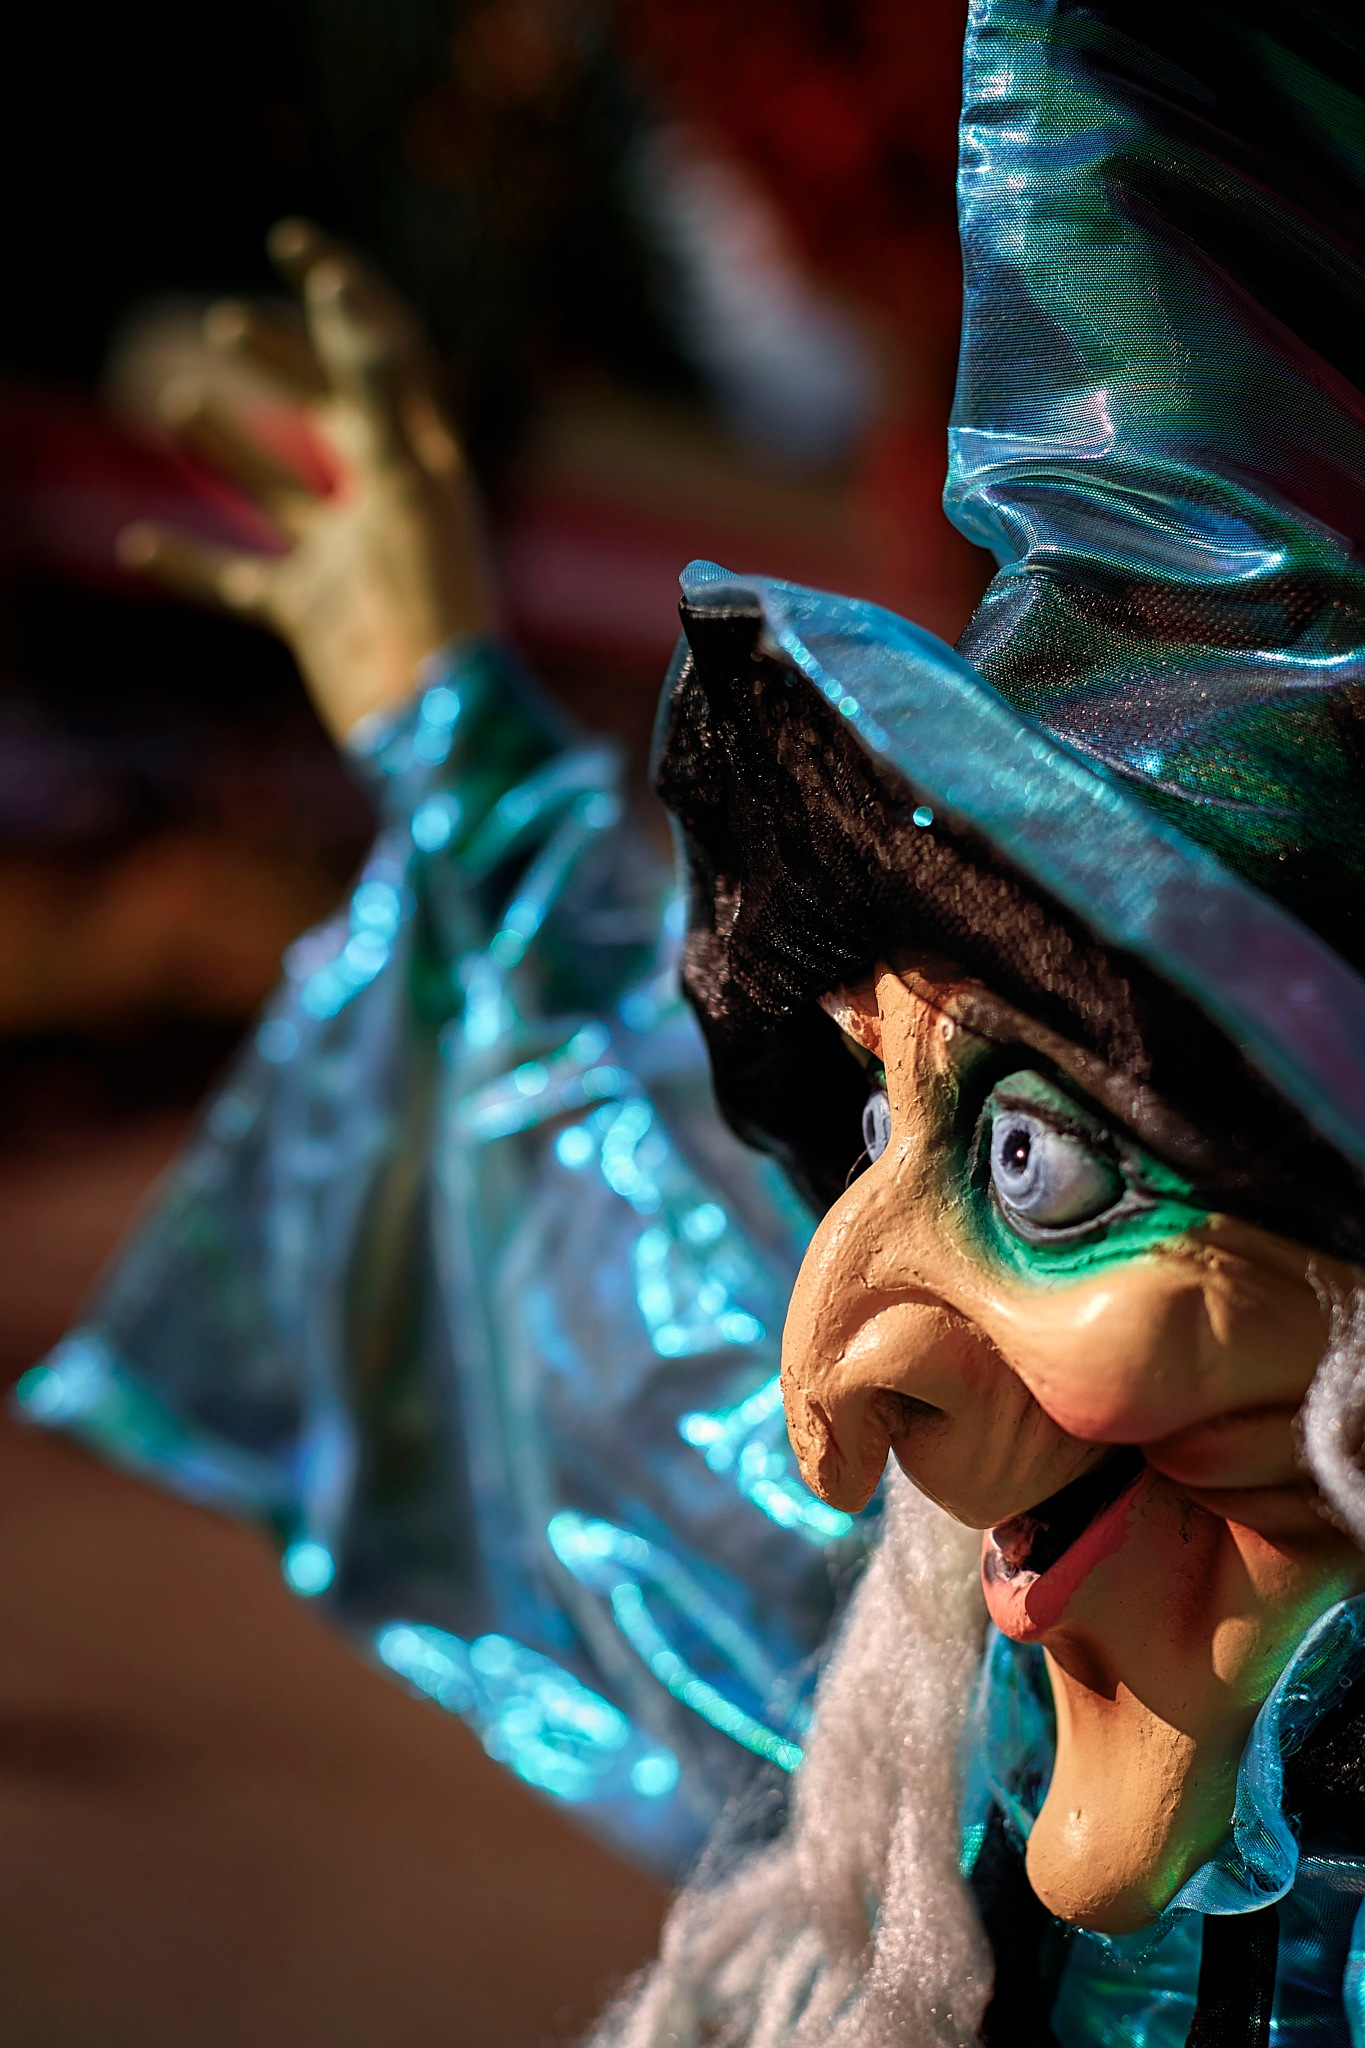 Edgemont Village witch by Greg Mullaly